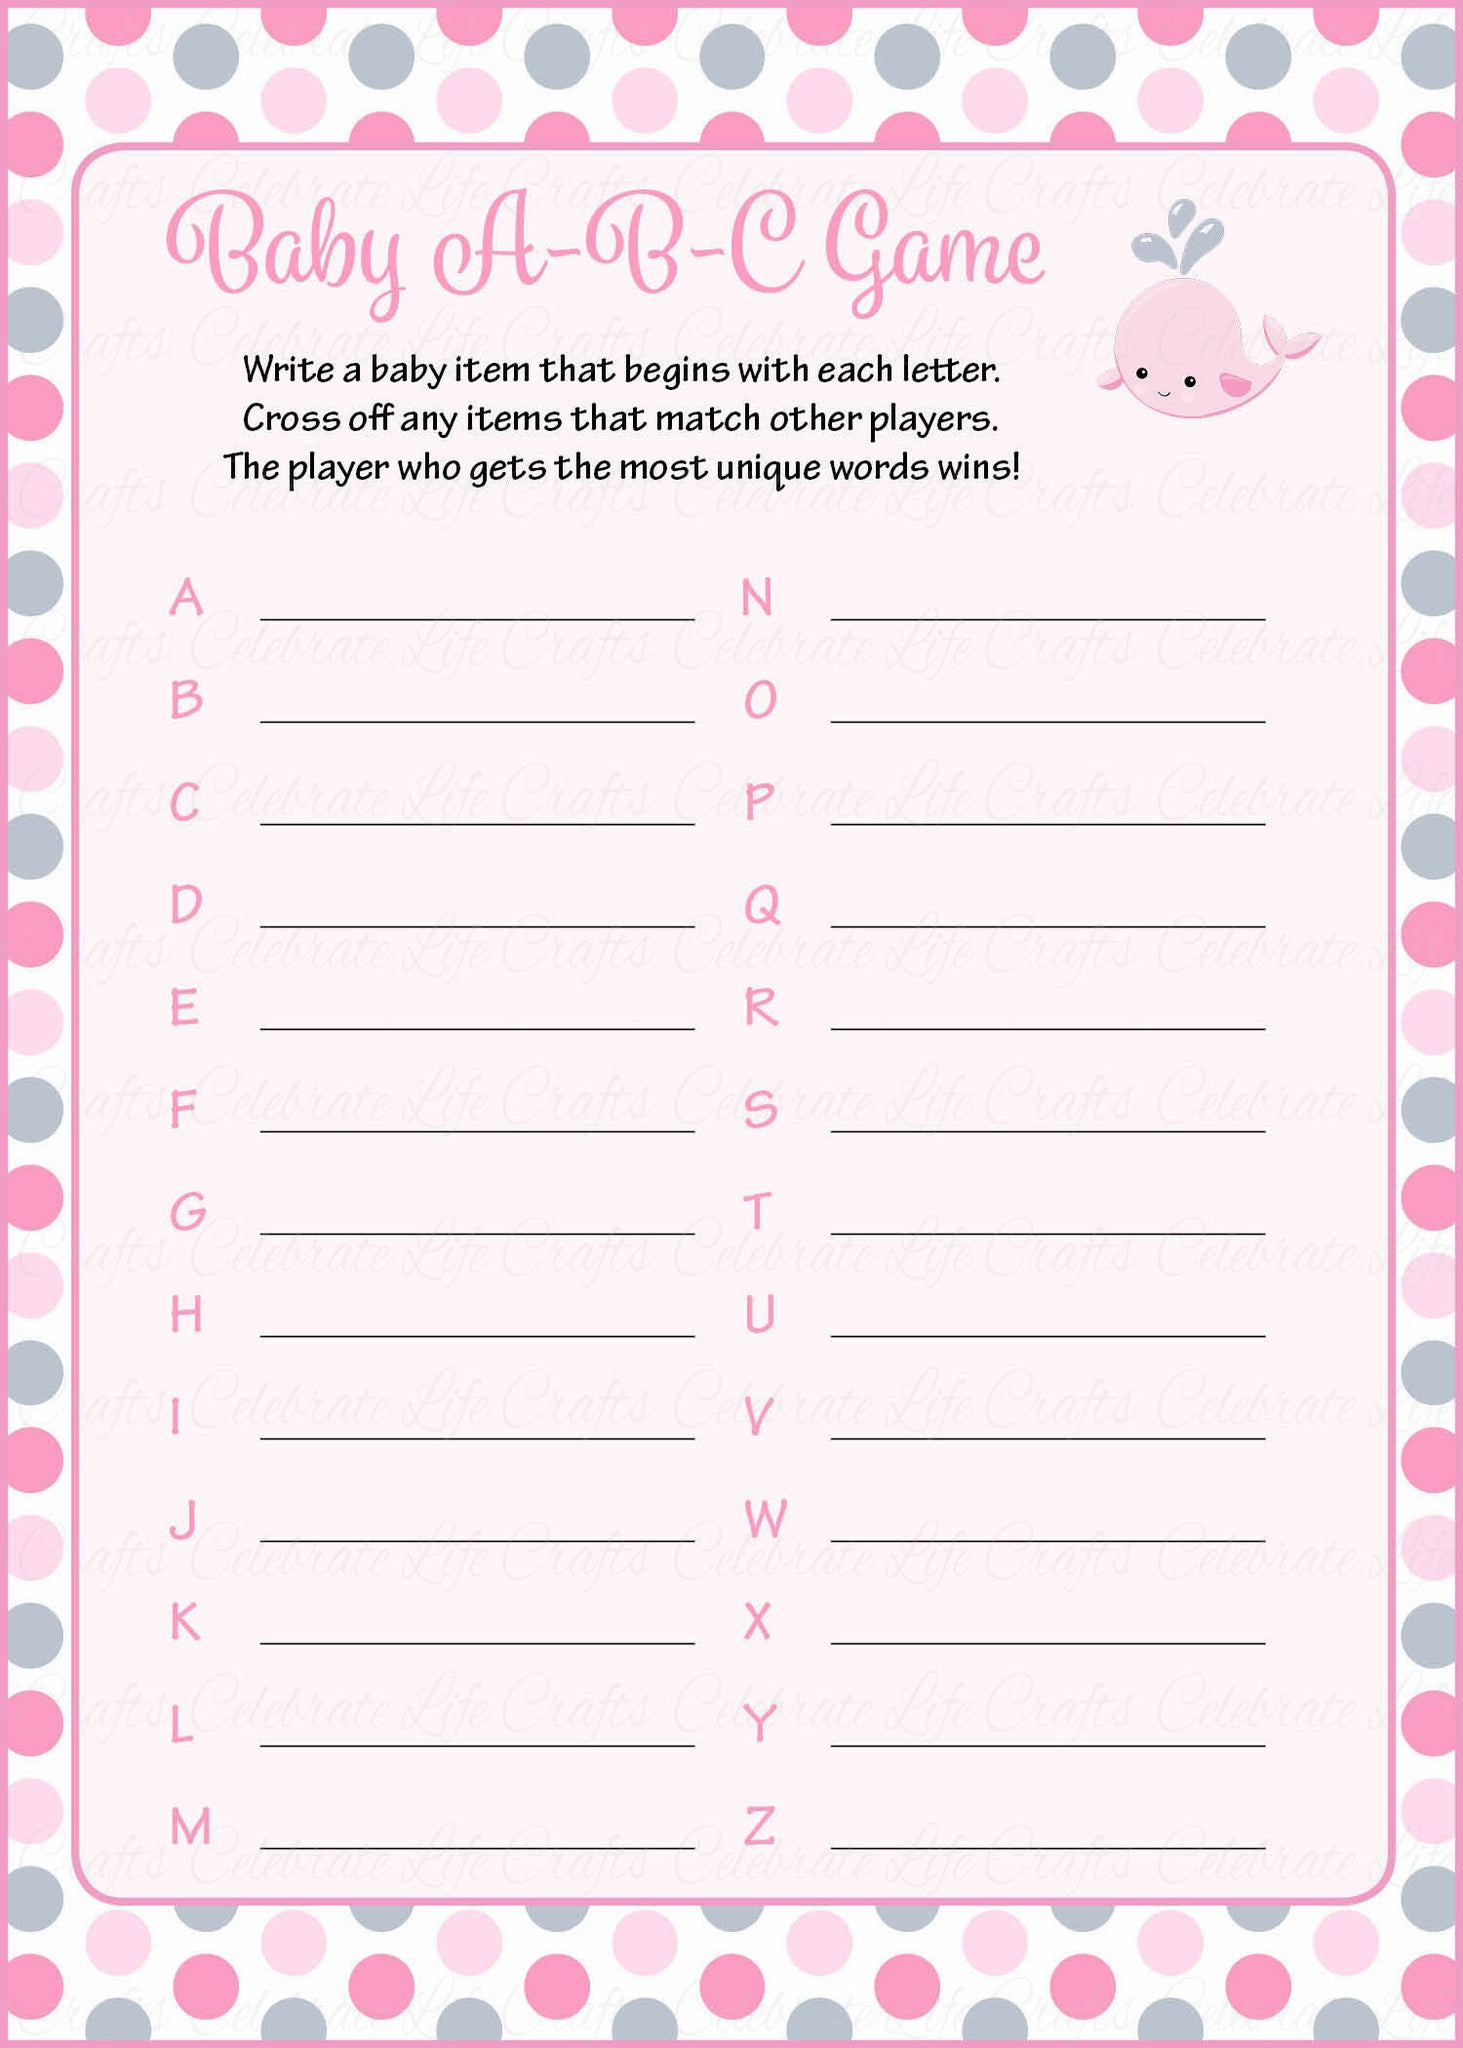 Baby Abcs Baby Shower Game Whale Baby Shower Theme For Baby Girl